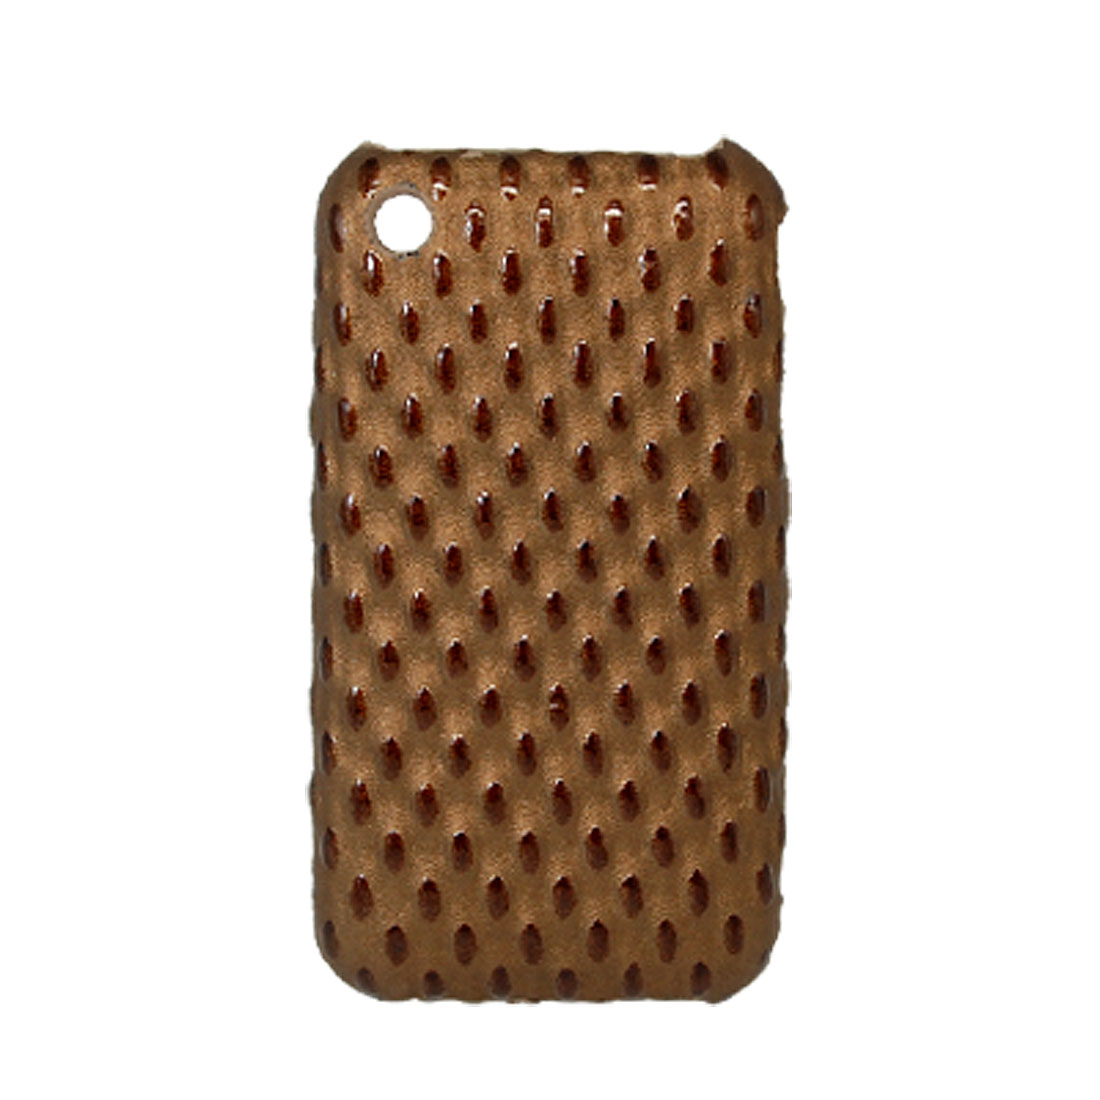 Non-Slip Hard Plastic Case Cover Brown for Apple iPhone 3G